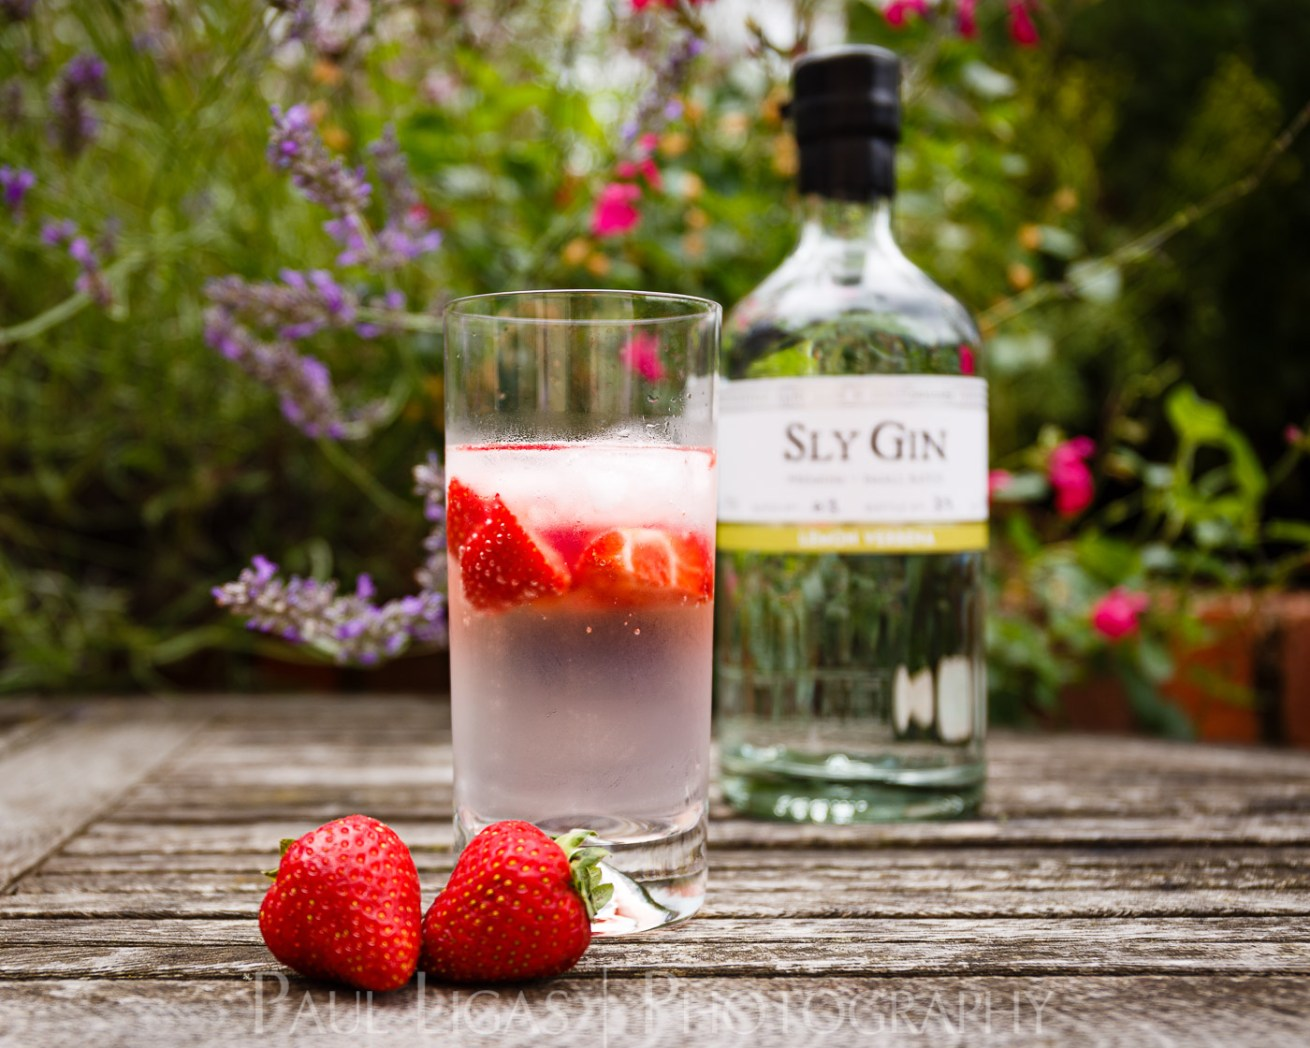 Haven Distillery Sly Gin Hereford product lifestyle photography photographer 5298